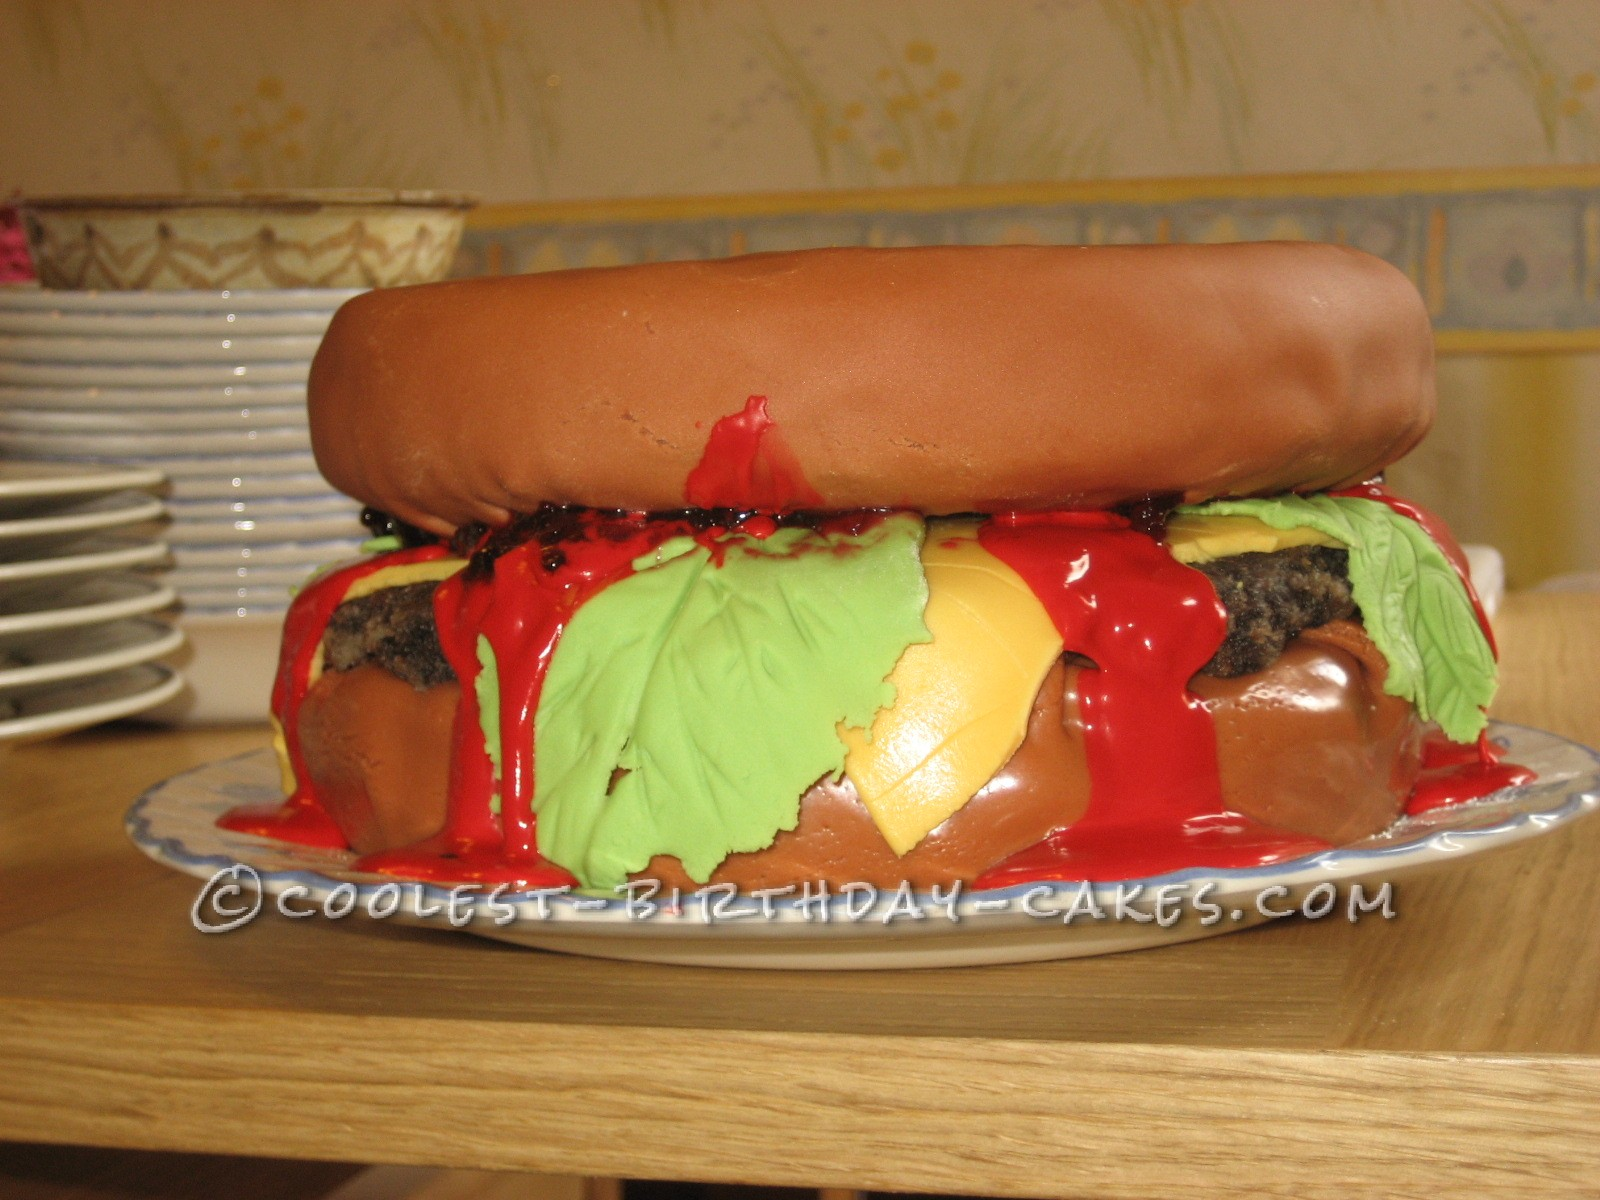 Side view of hamburger cake